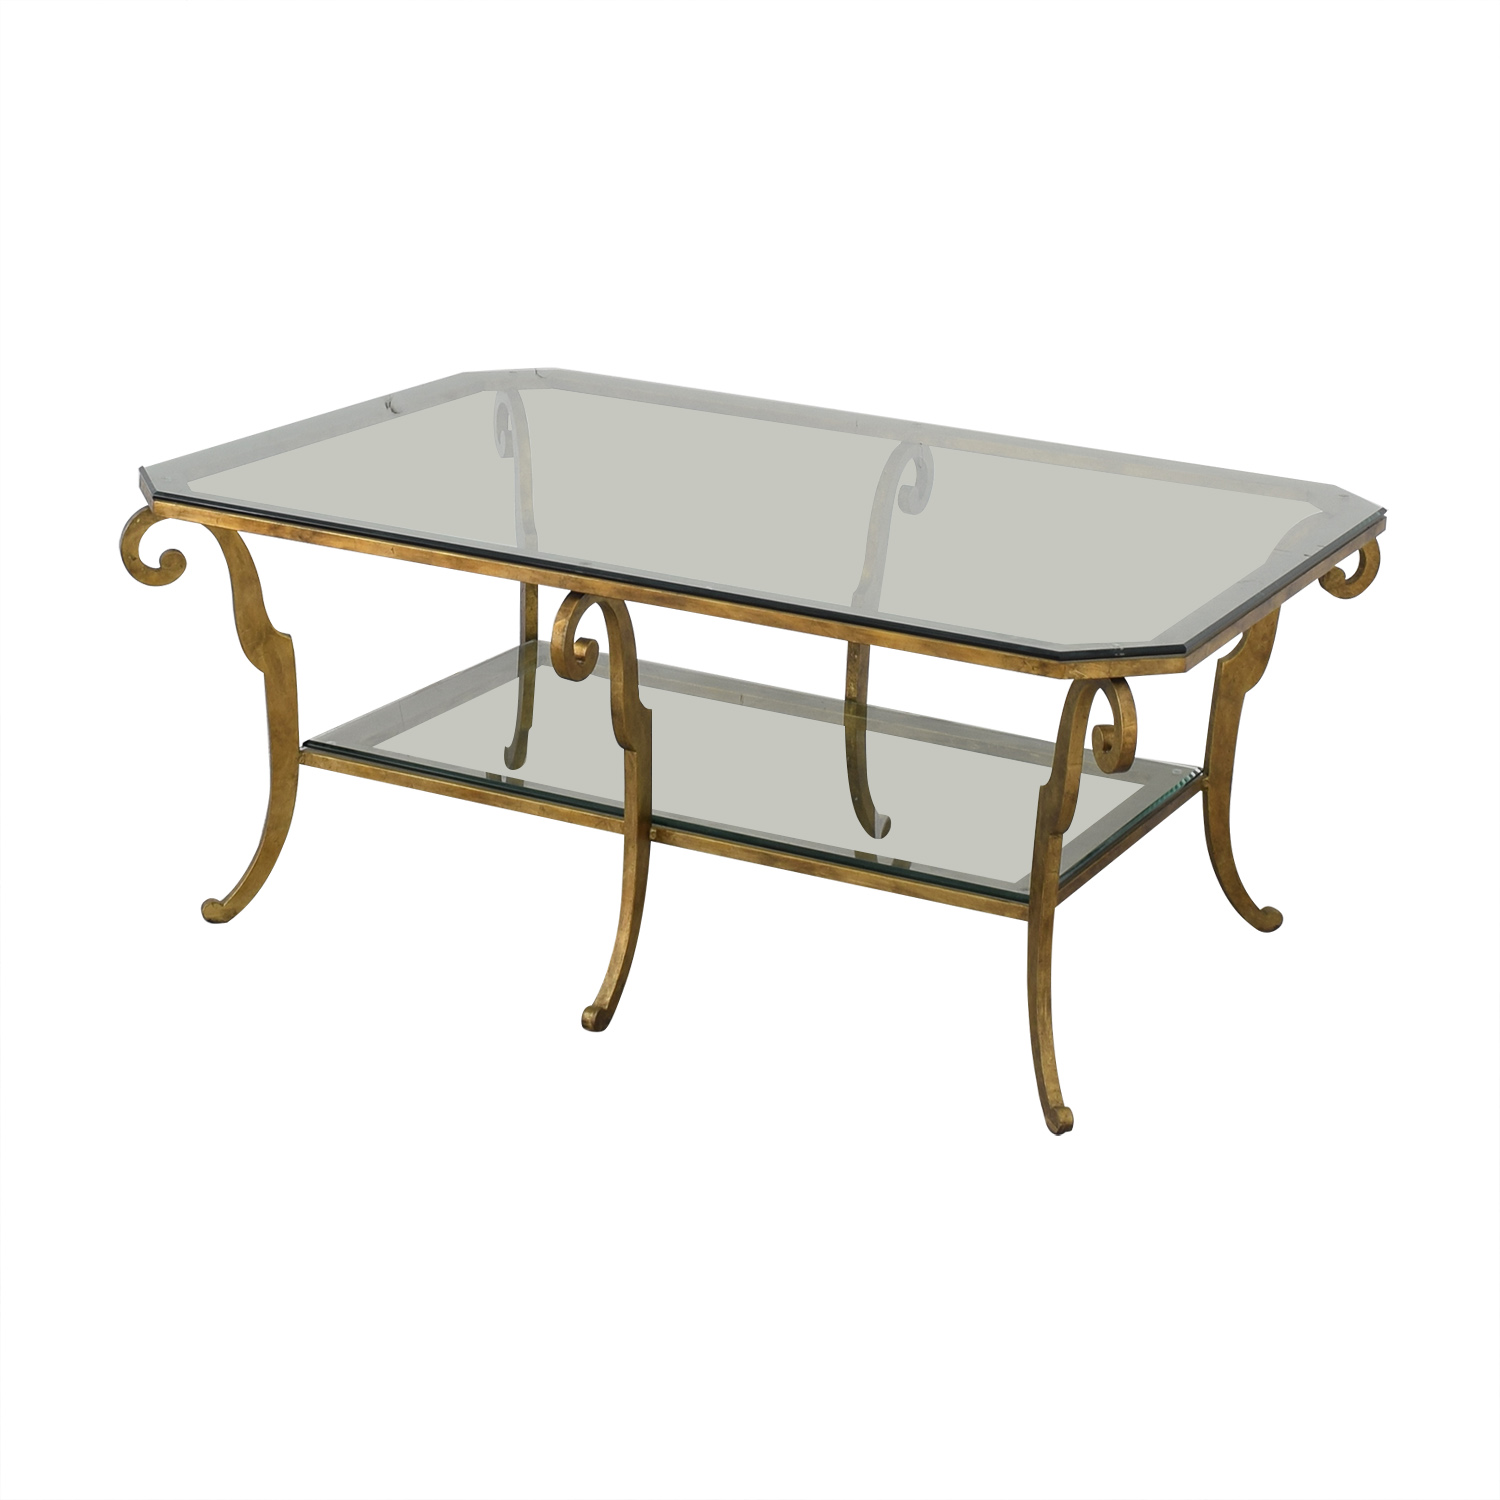 Ethan Allen Ethan Allen Two Tiered Coffee Table ct